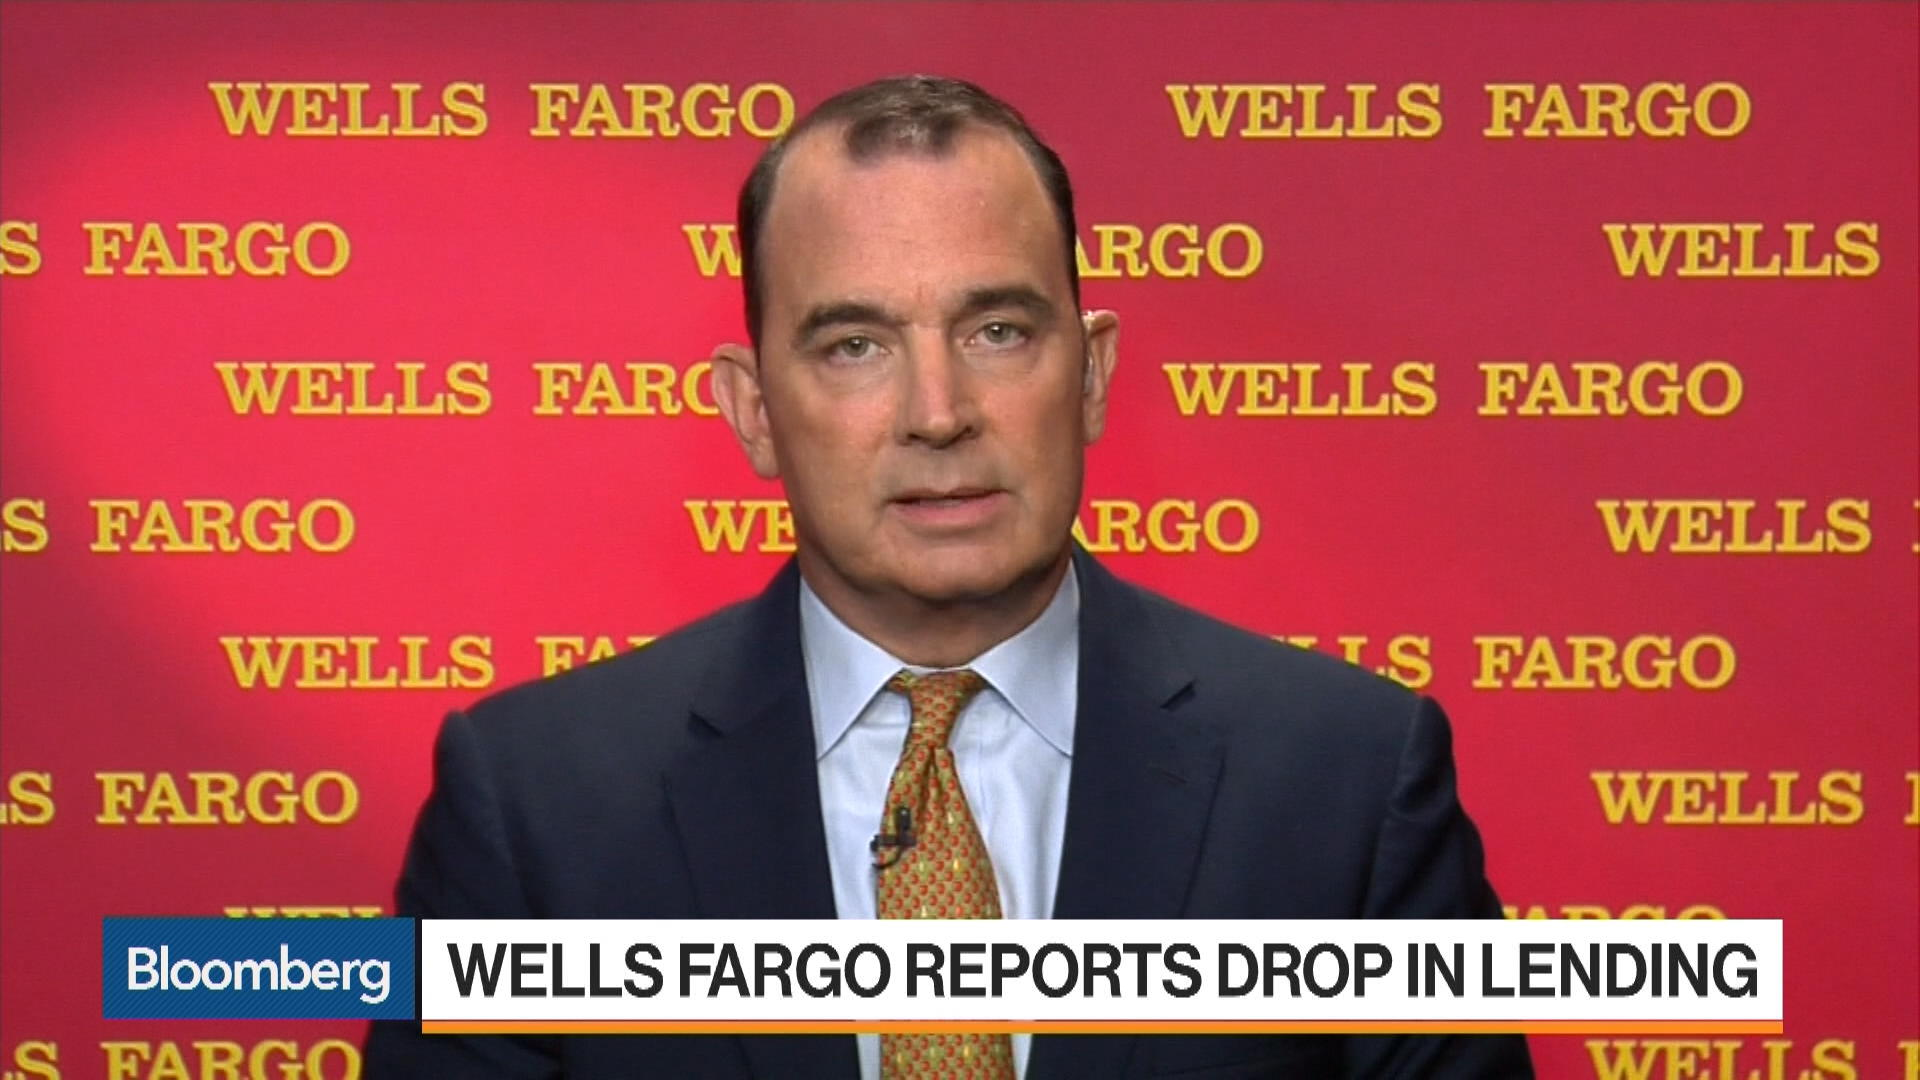 Wells Fargo Cfo Says Bank Is Consolidating Auto Centers